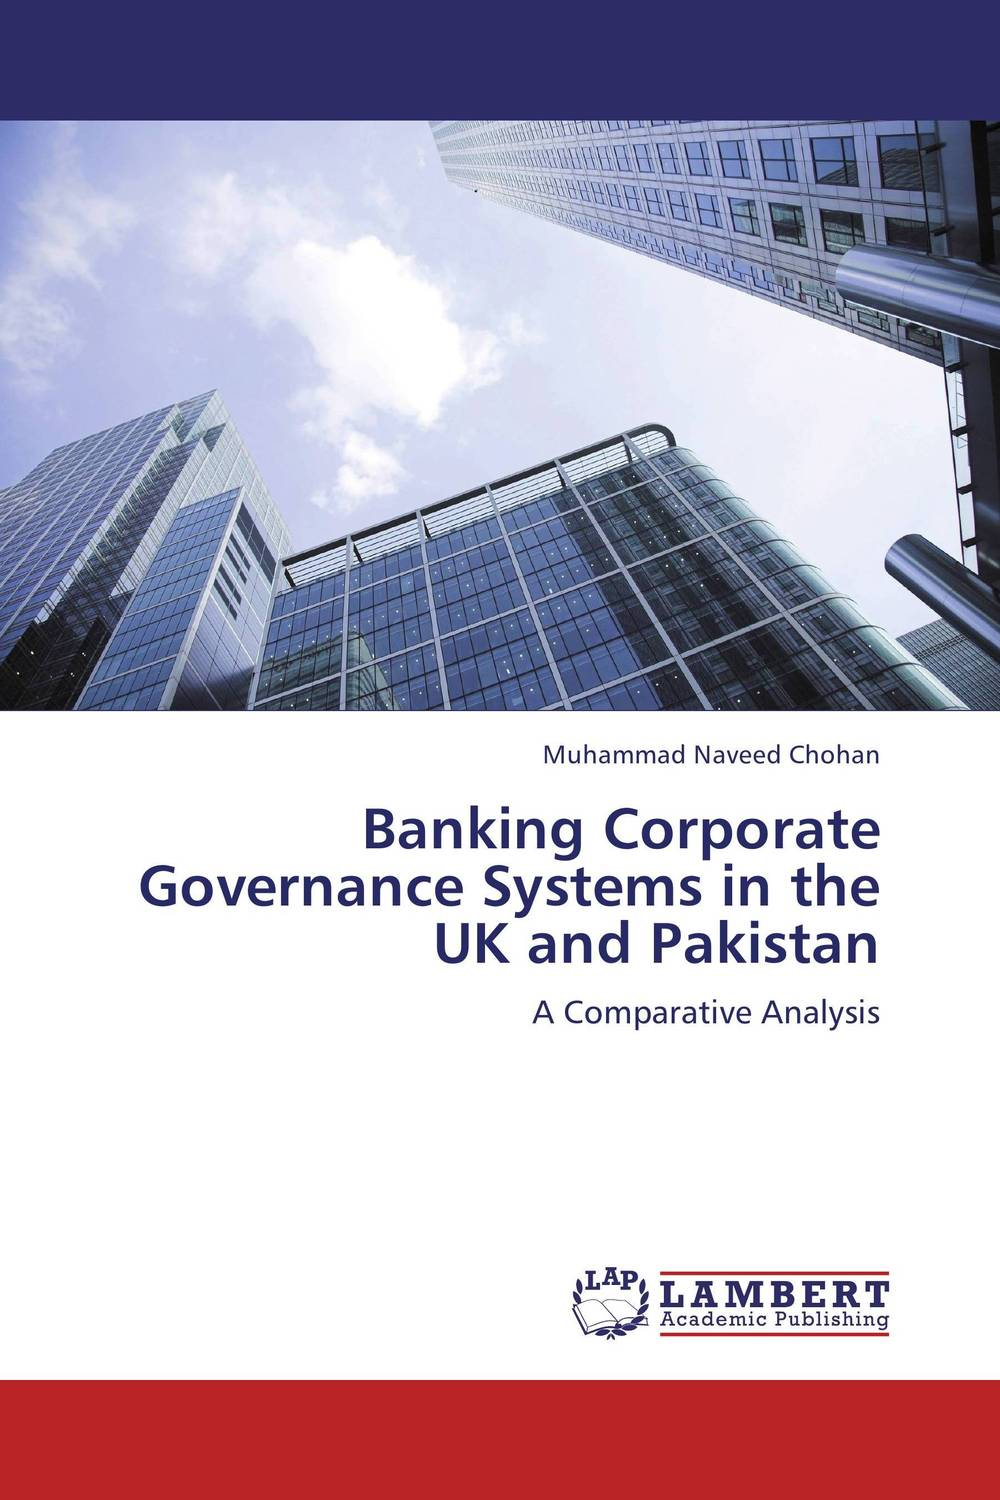 Banking Corporate Governance Systems in the UK and Pakistan a4 manager folder multifunction leather office folder includes 12 bit calculator clipboard business organizer folder